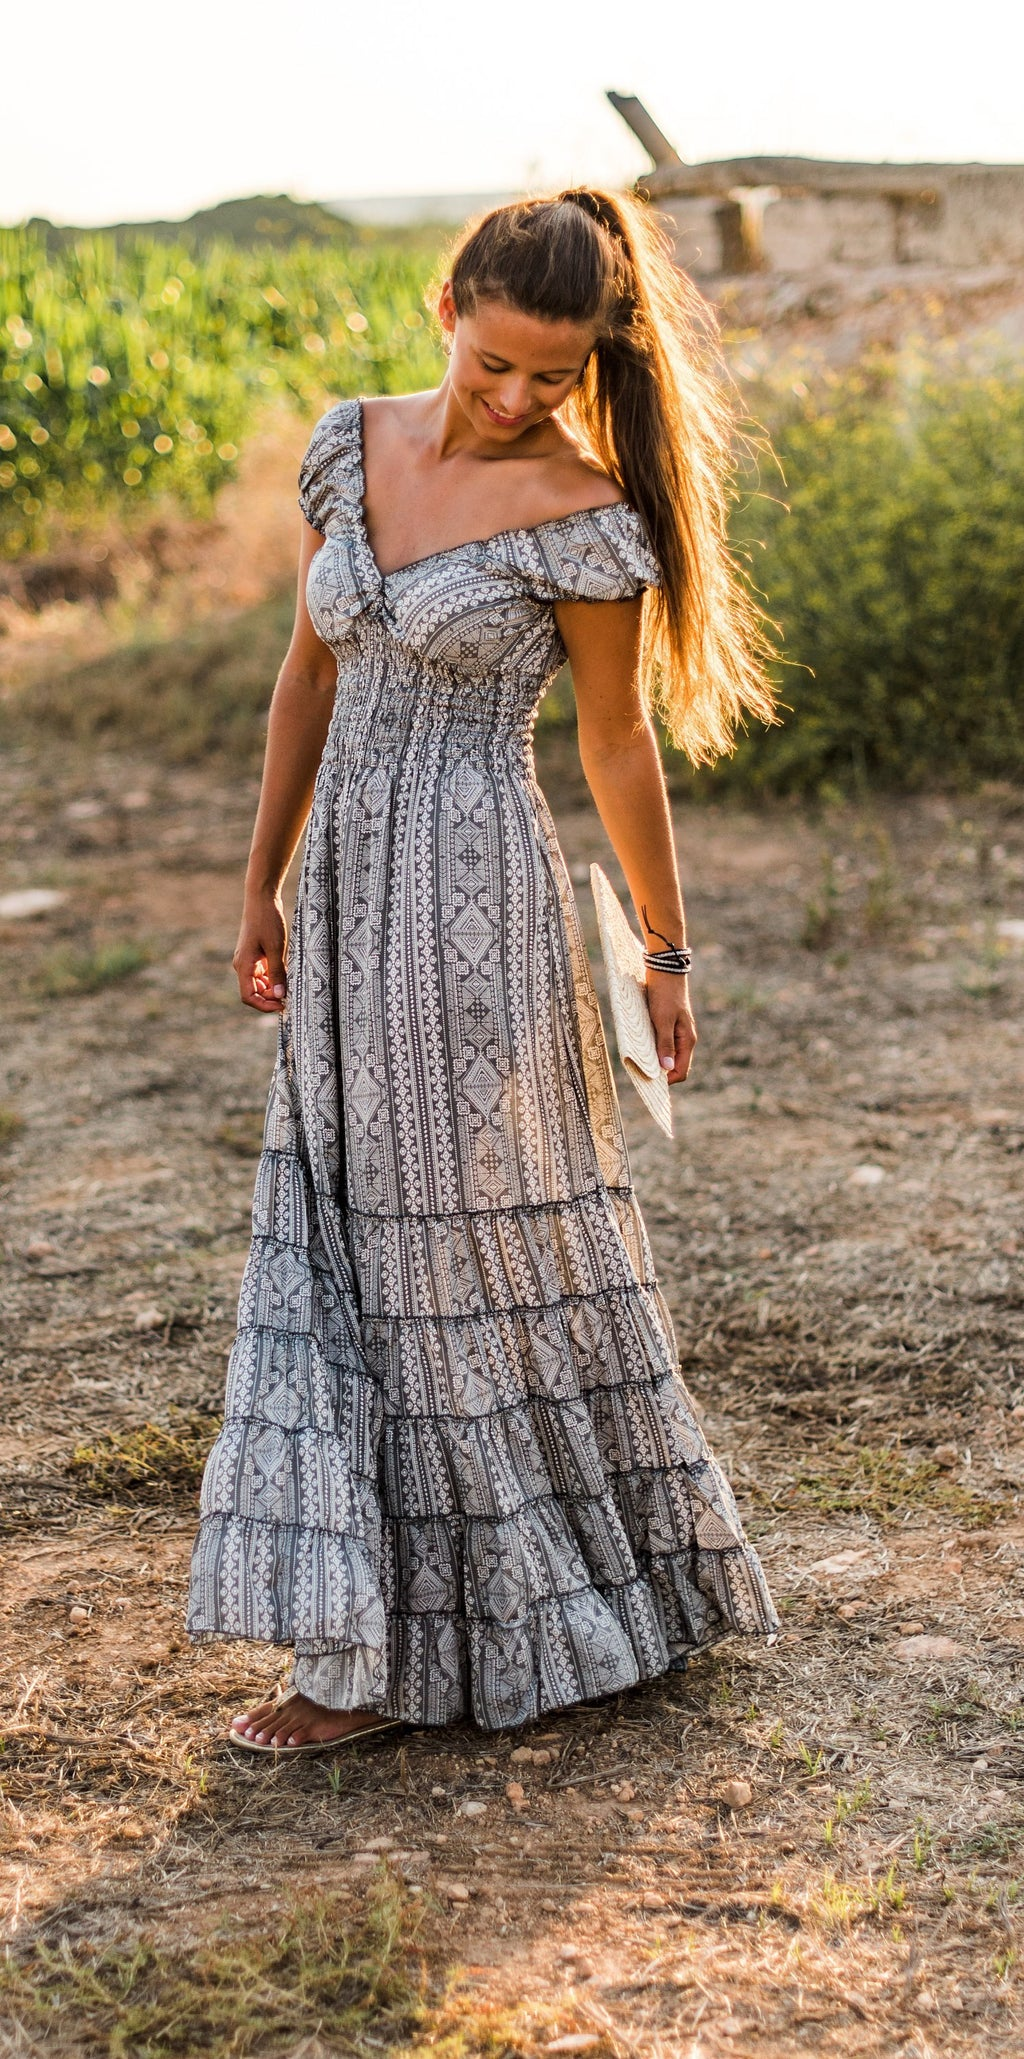 boho silk dress resort wear cruise dress tribal silk dress tribal bohemian ruffle dress boho ruffle dress